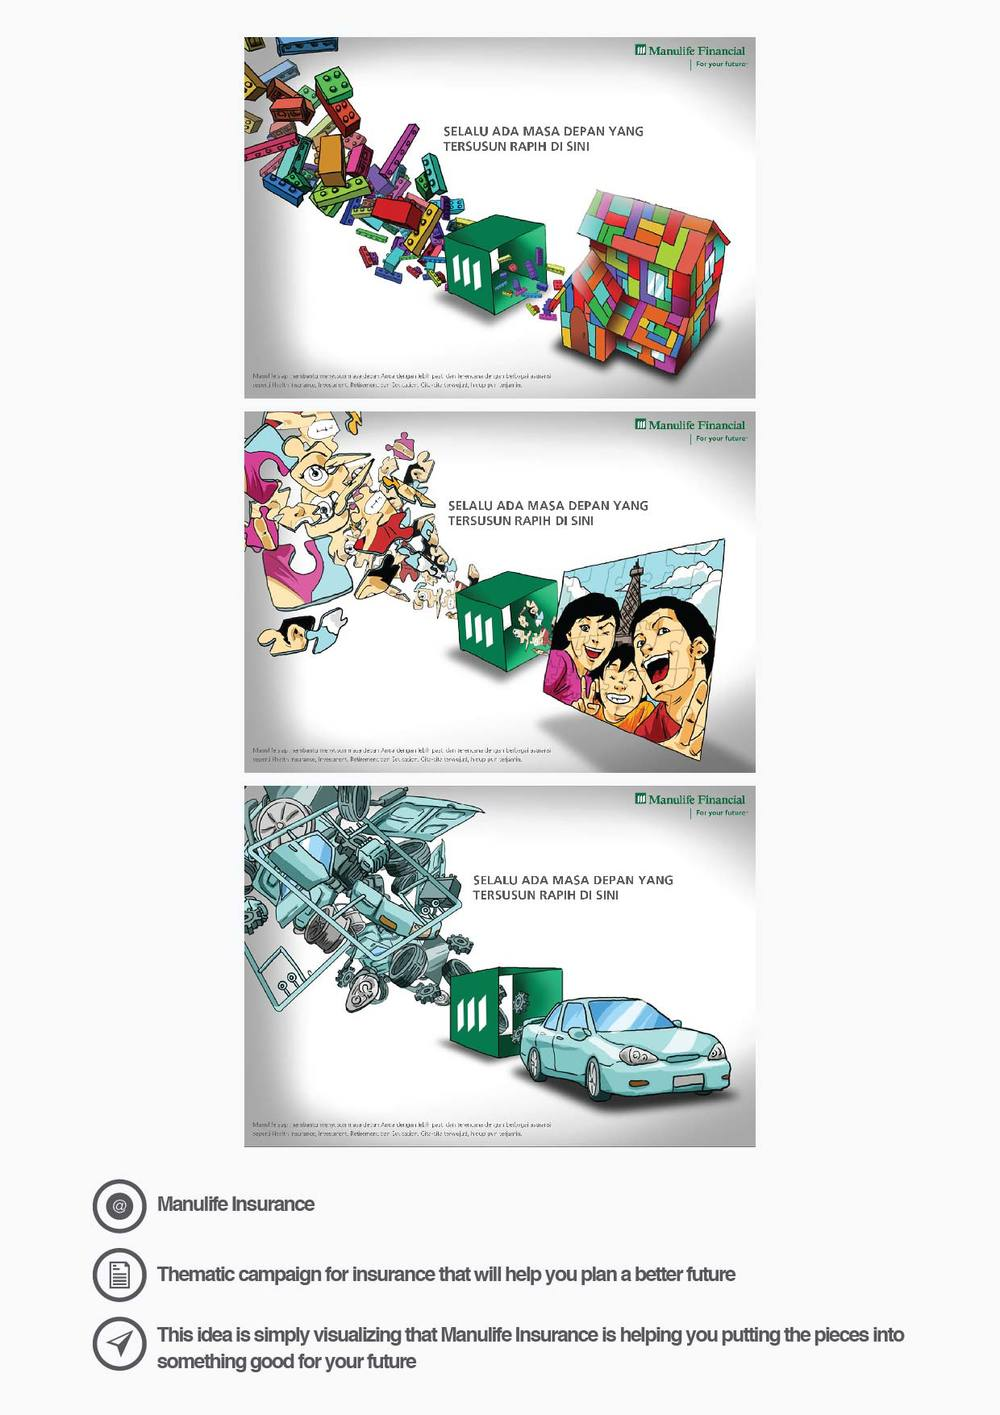 Manulife Insurance Thematic campaign for insurance that will help you plan a better future